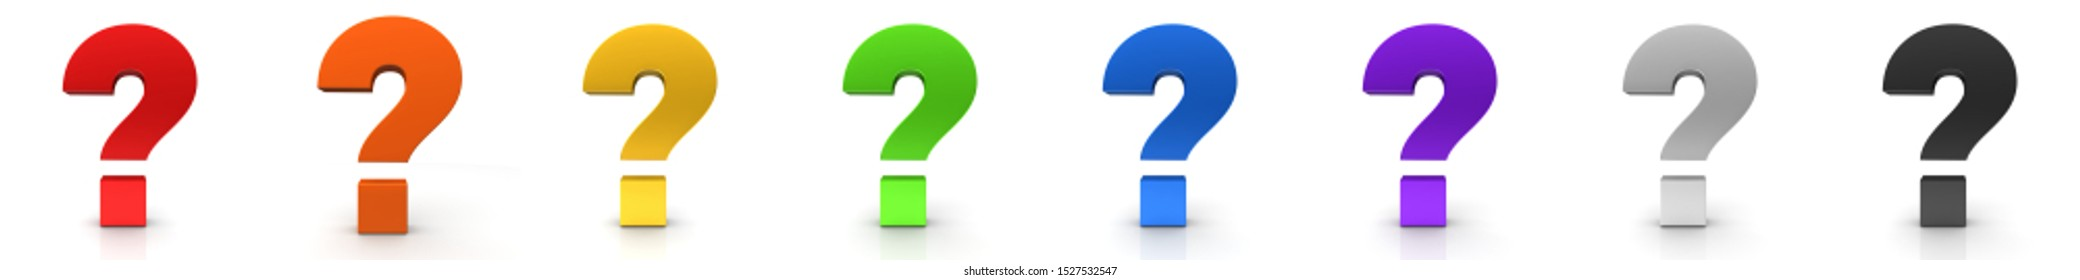 question mark 3d rendering illustration interrogation points red orange gold yellow green blue purple silver black sign asking symbol icon set isolated on white